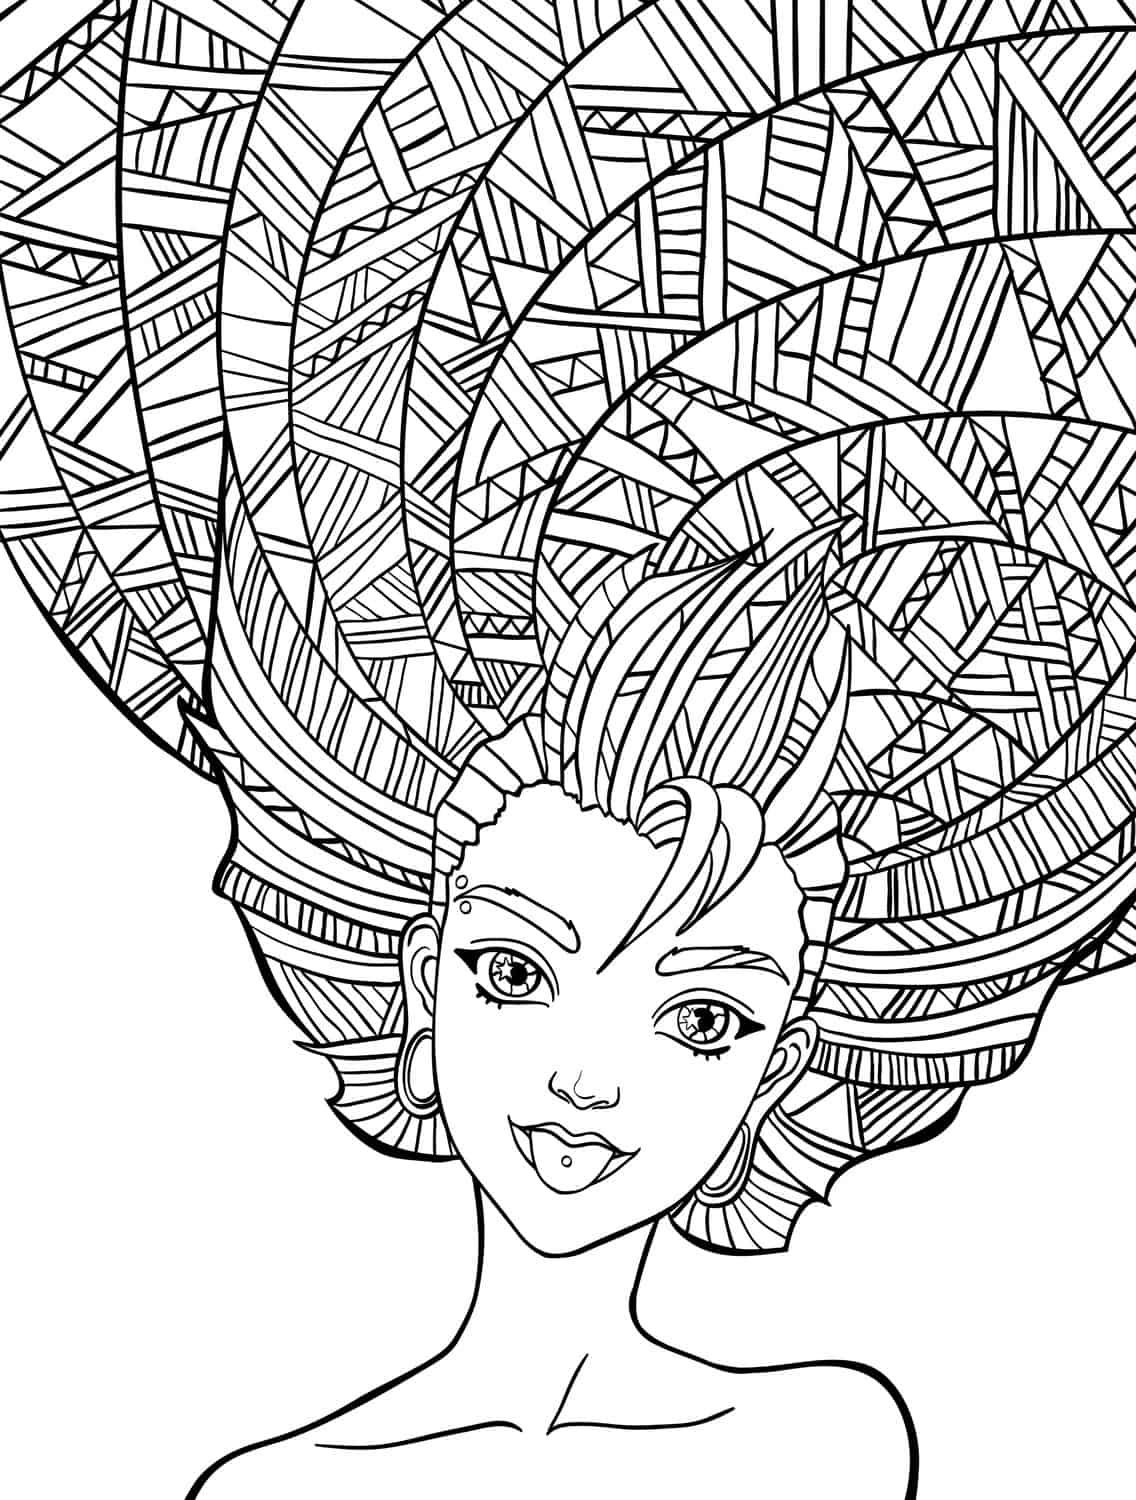 funny girl coloring pages - photo#25